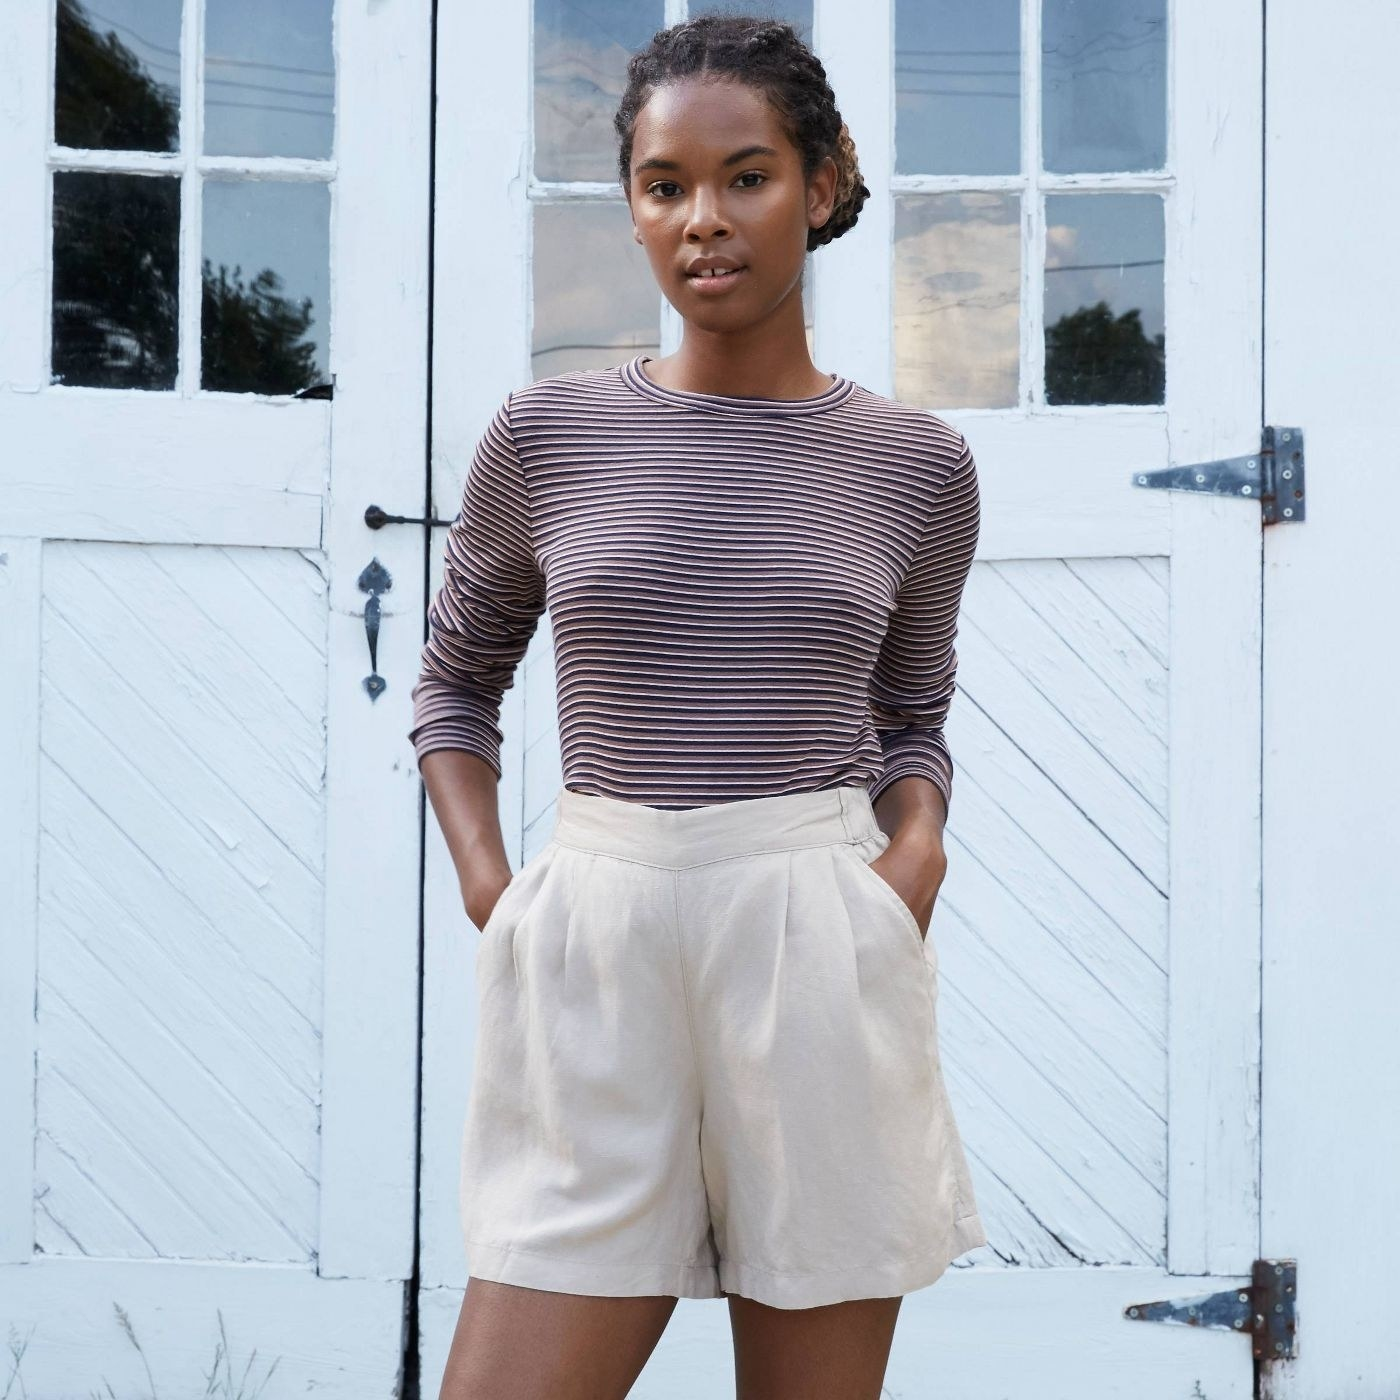 Model in striped long sleeve t-shirt and shorts